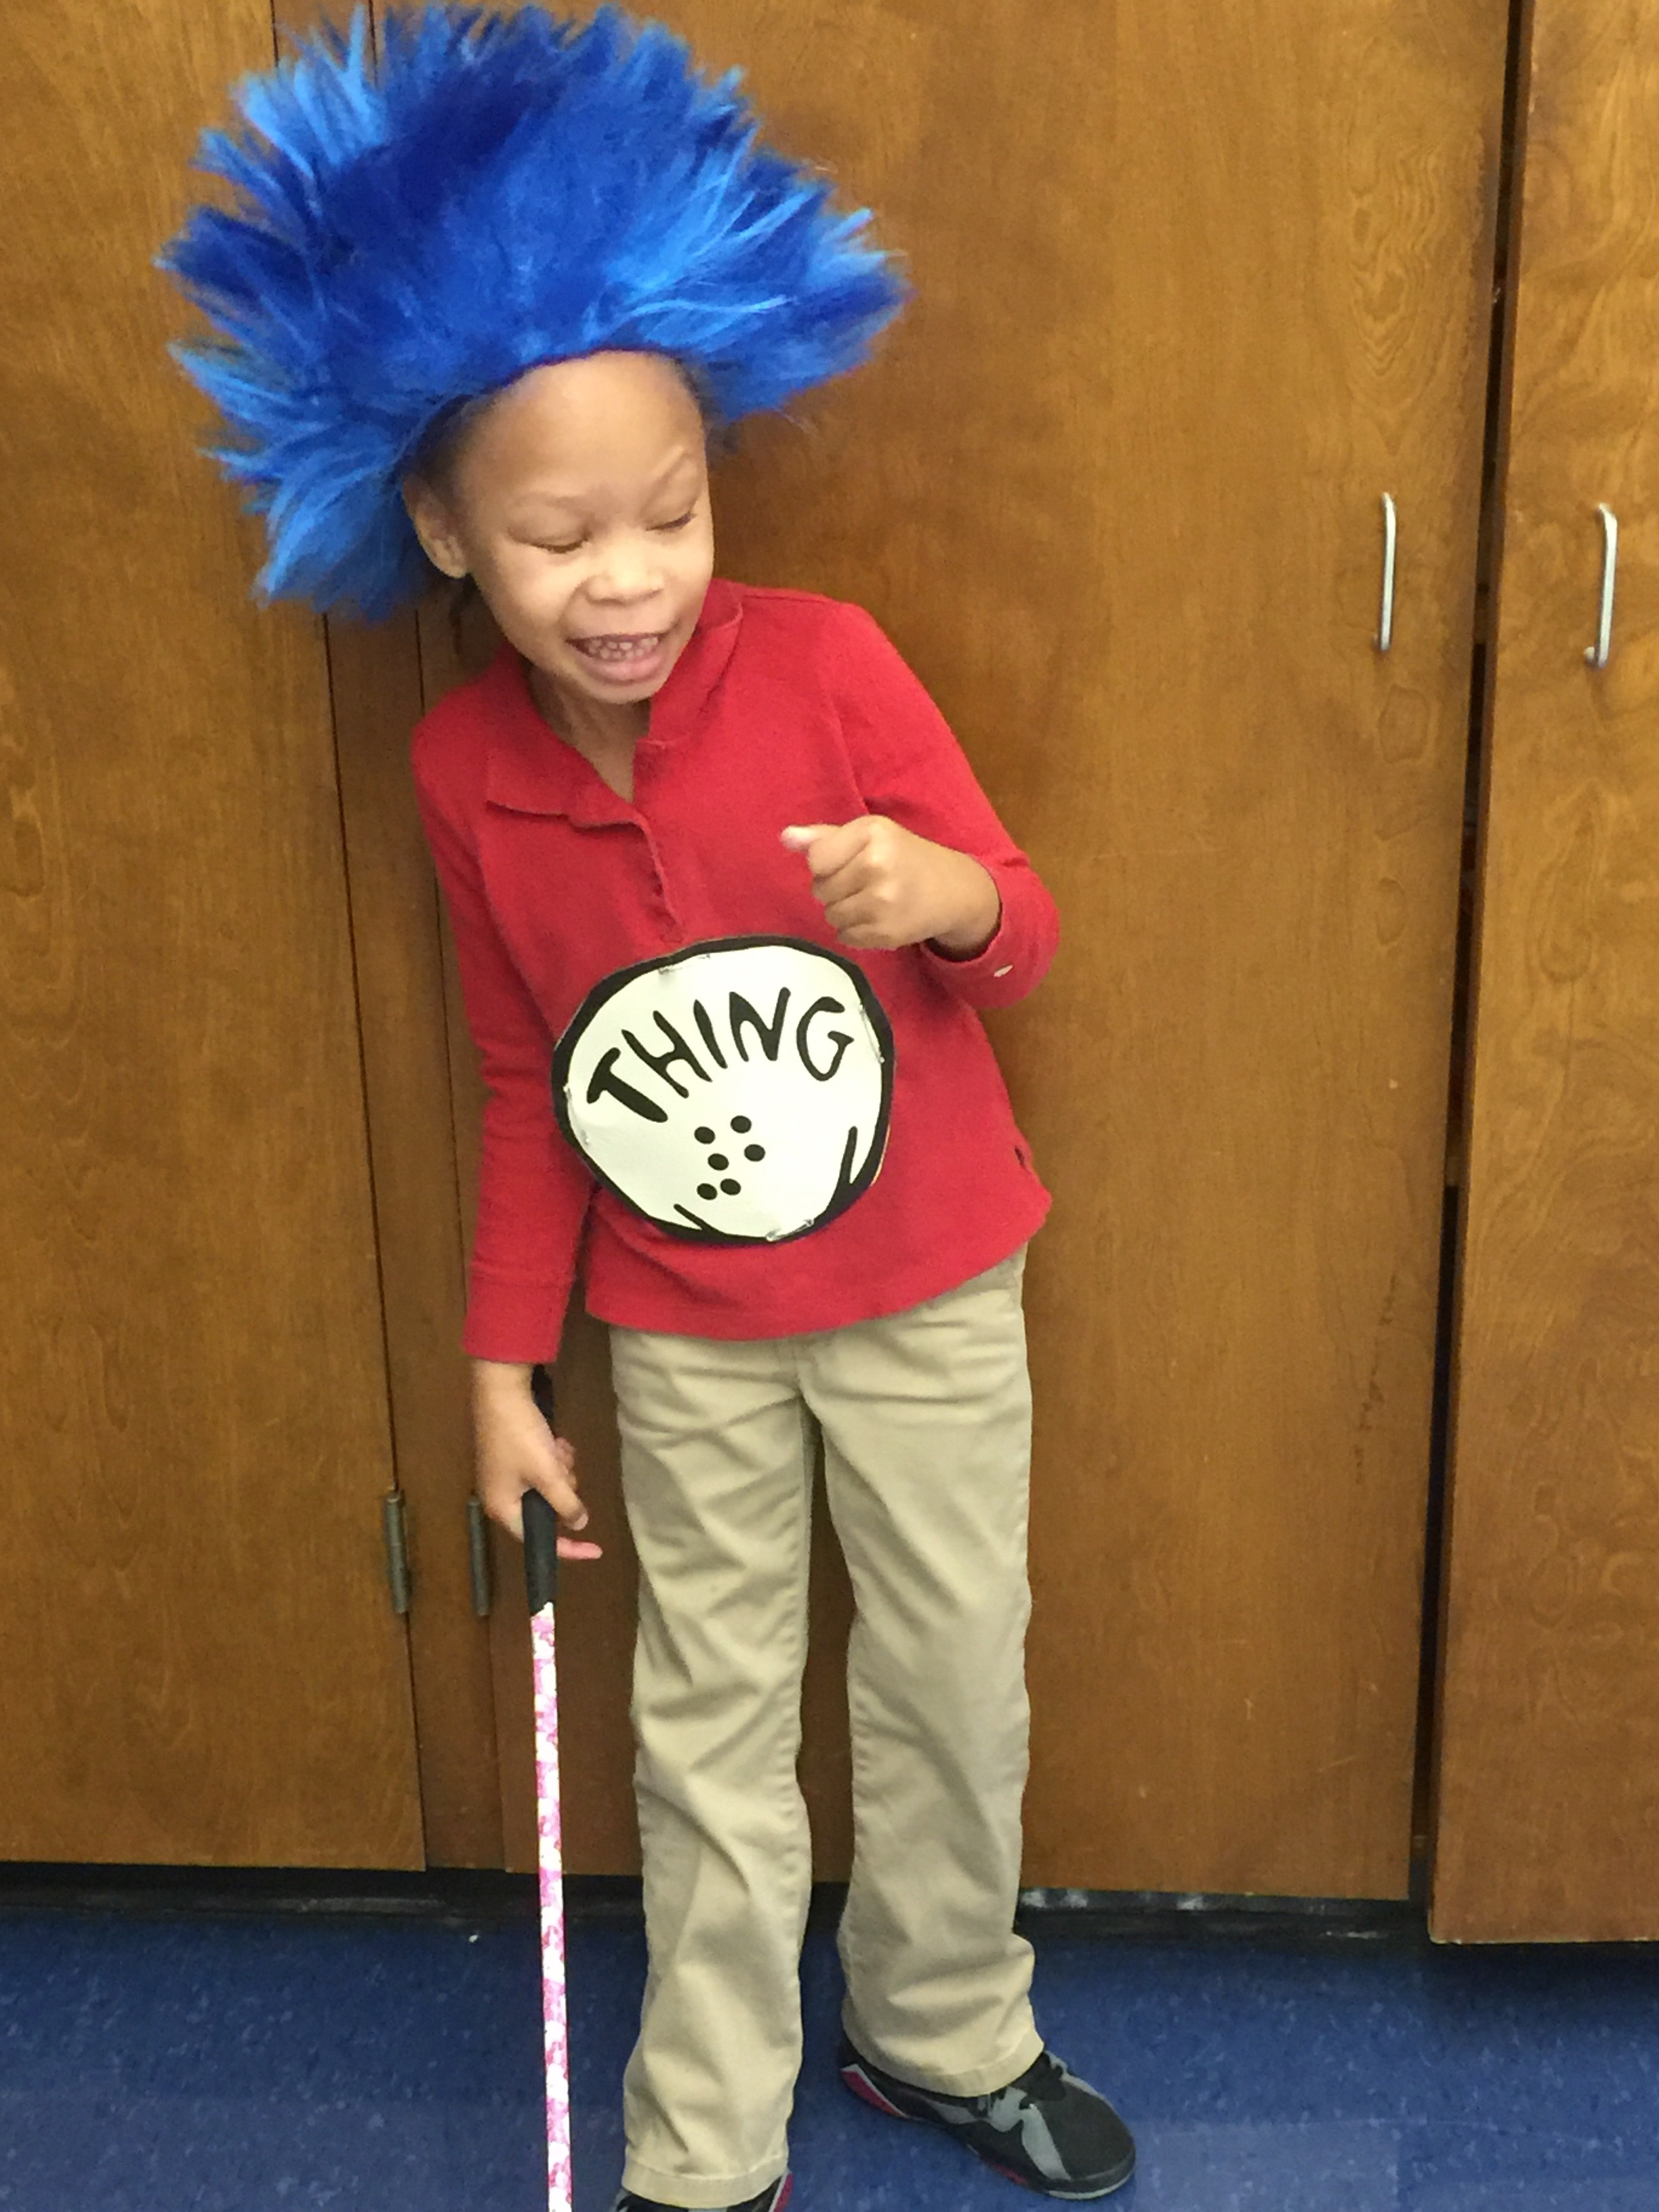 Passion dressed as Thing 2 for Read Across America day.